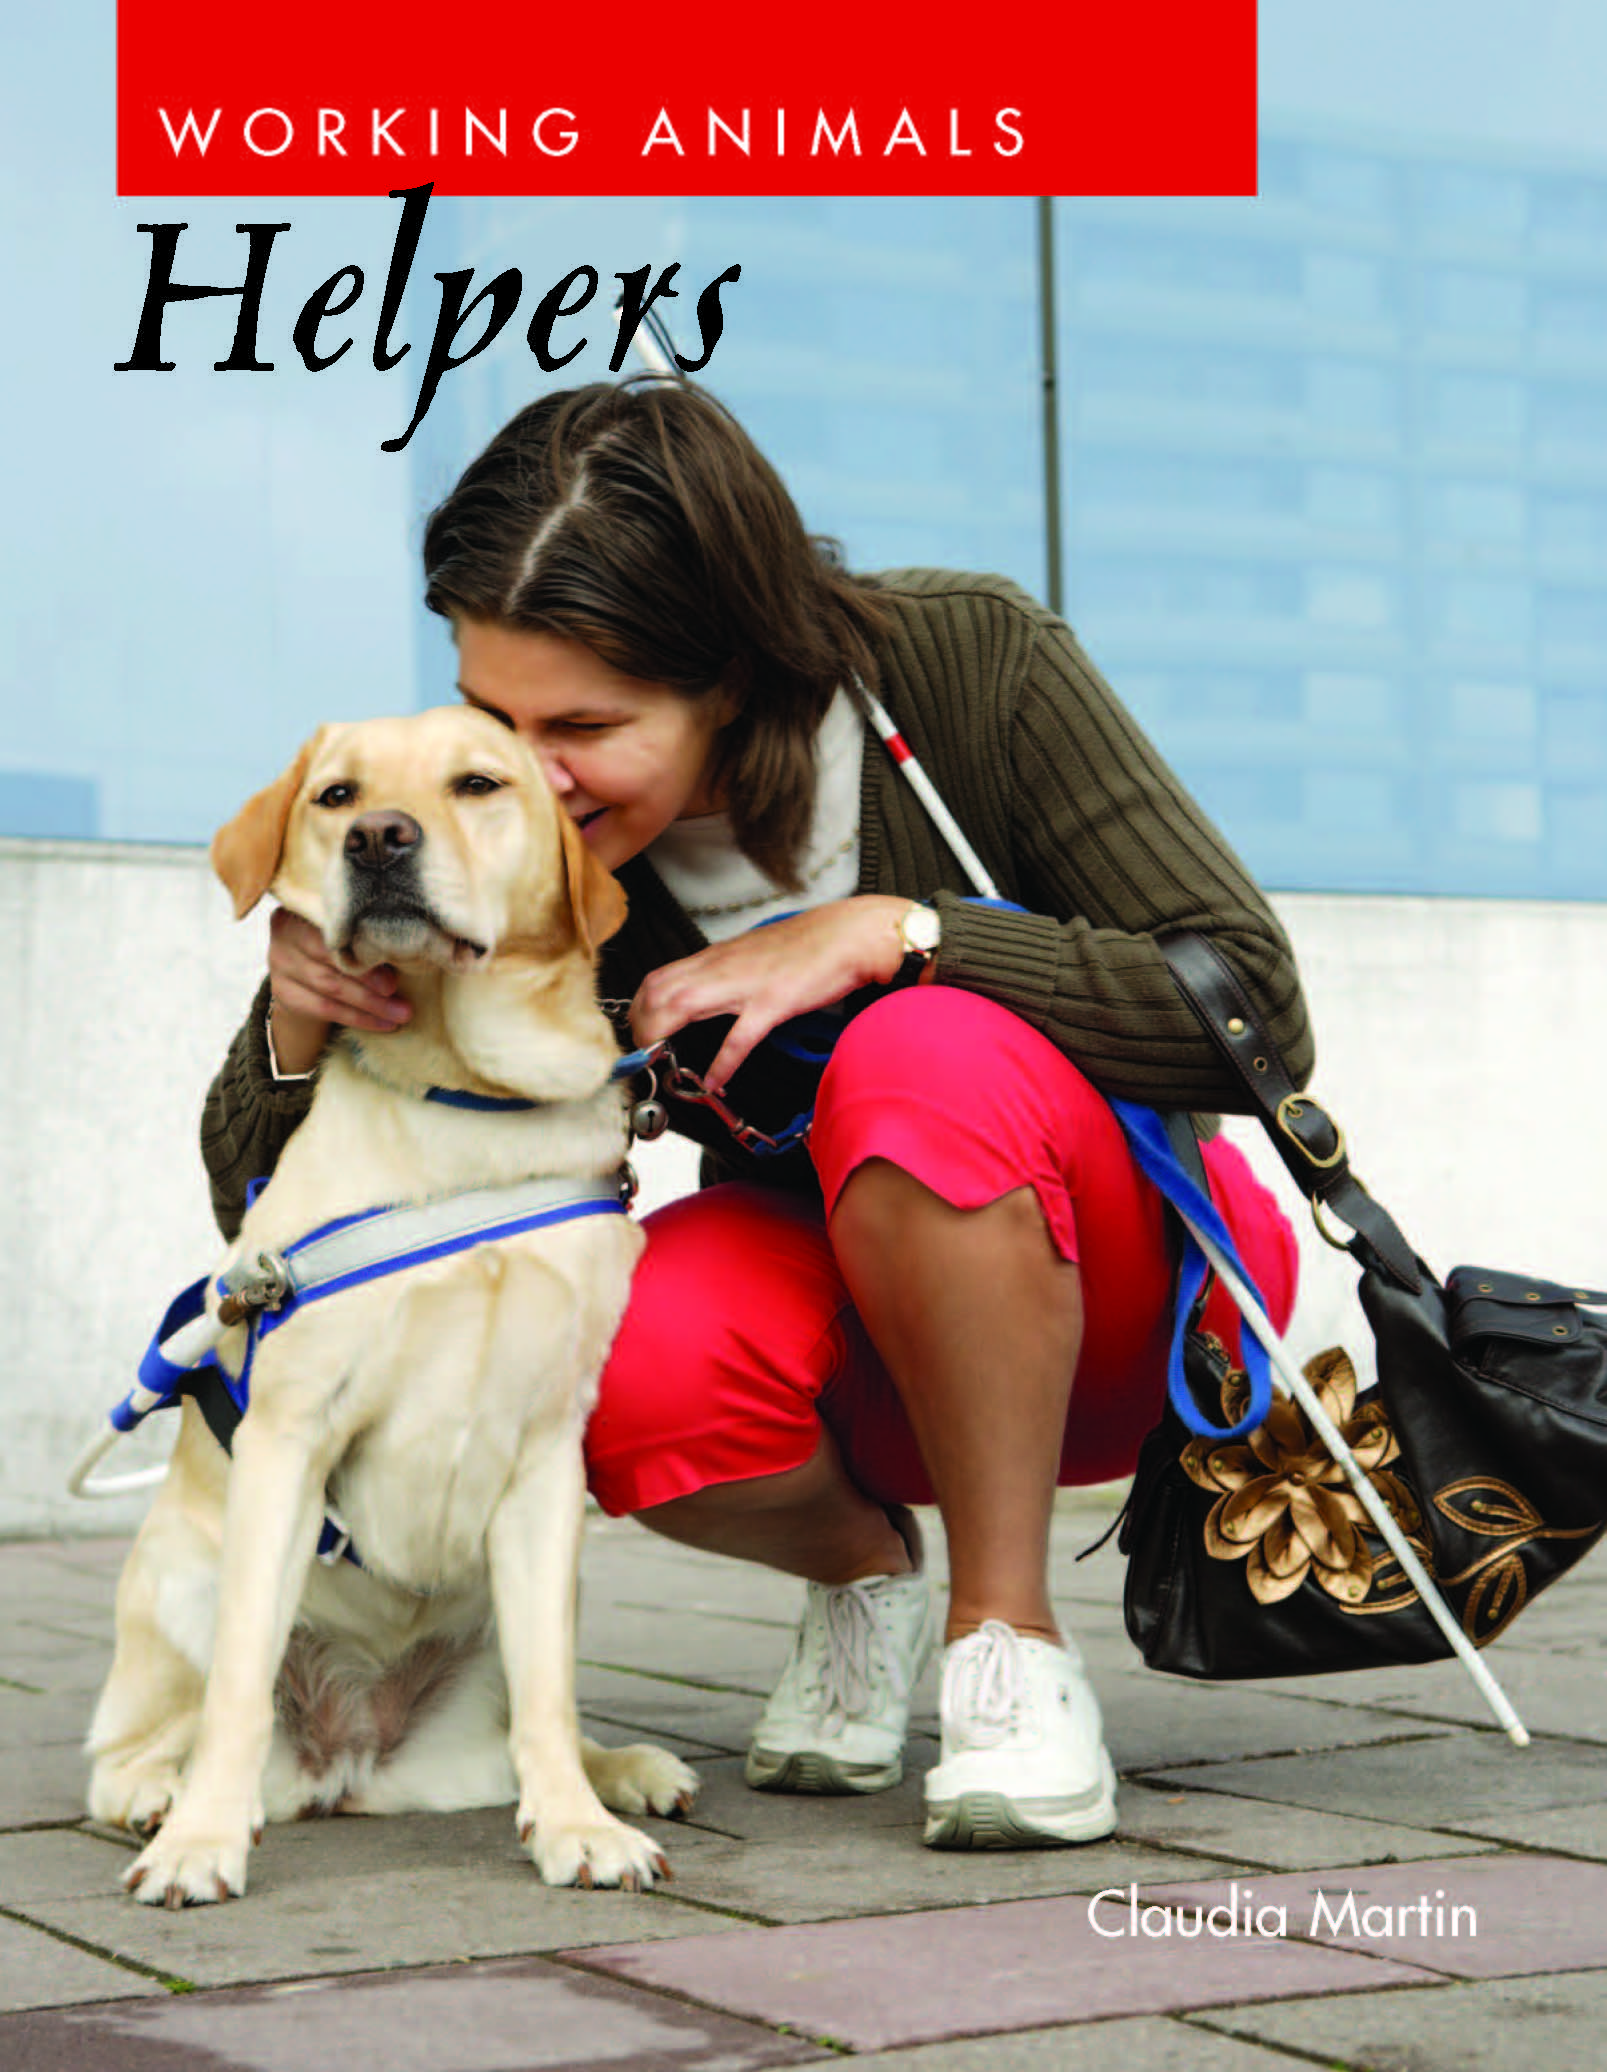 Working Animals: Helpers